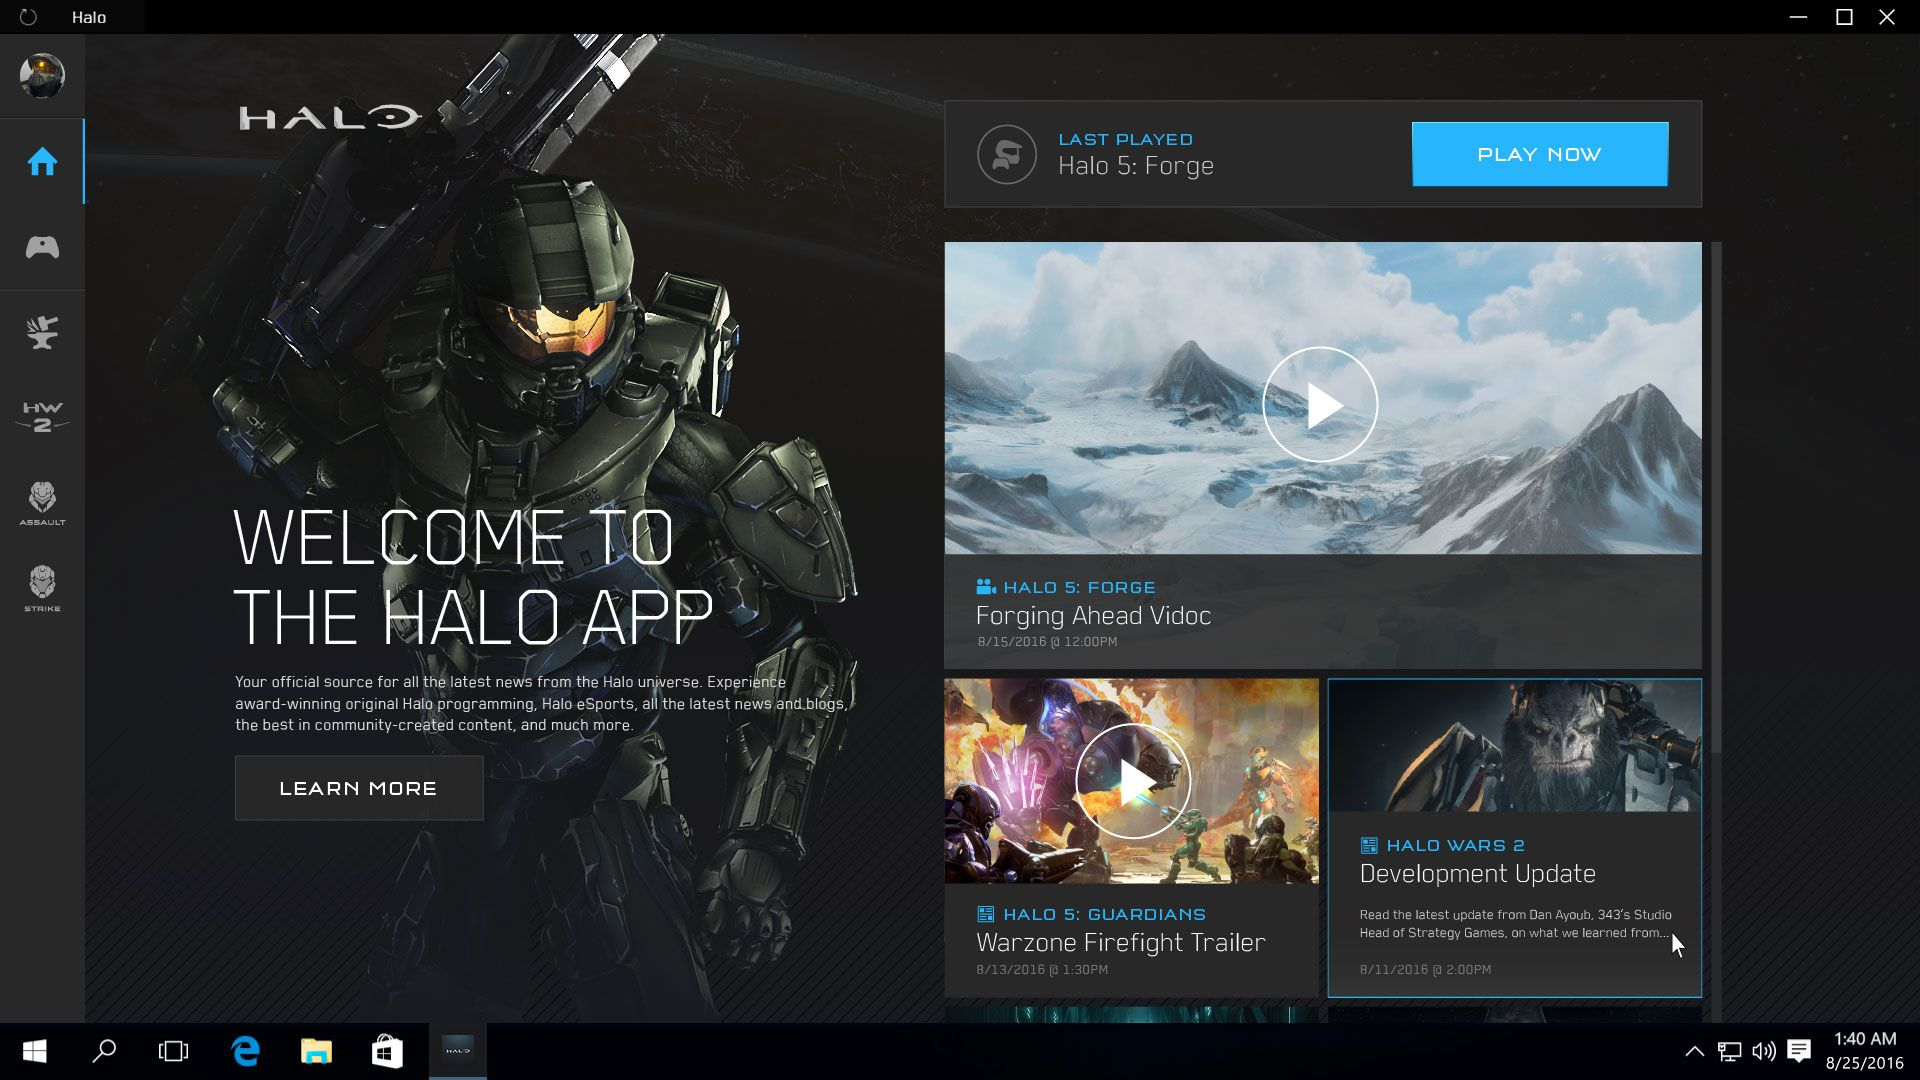 Microsoft Details Halo App for Windows 10 App, Halo game